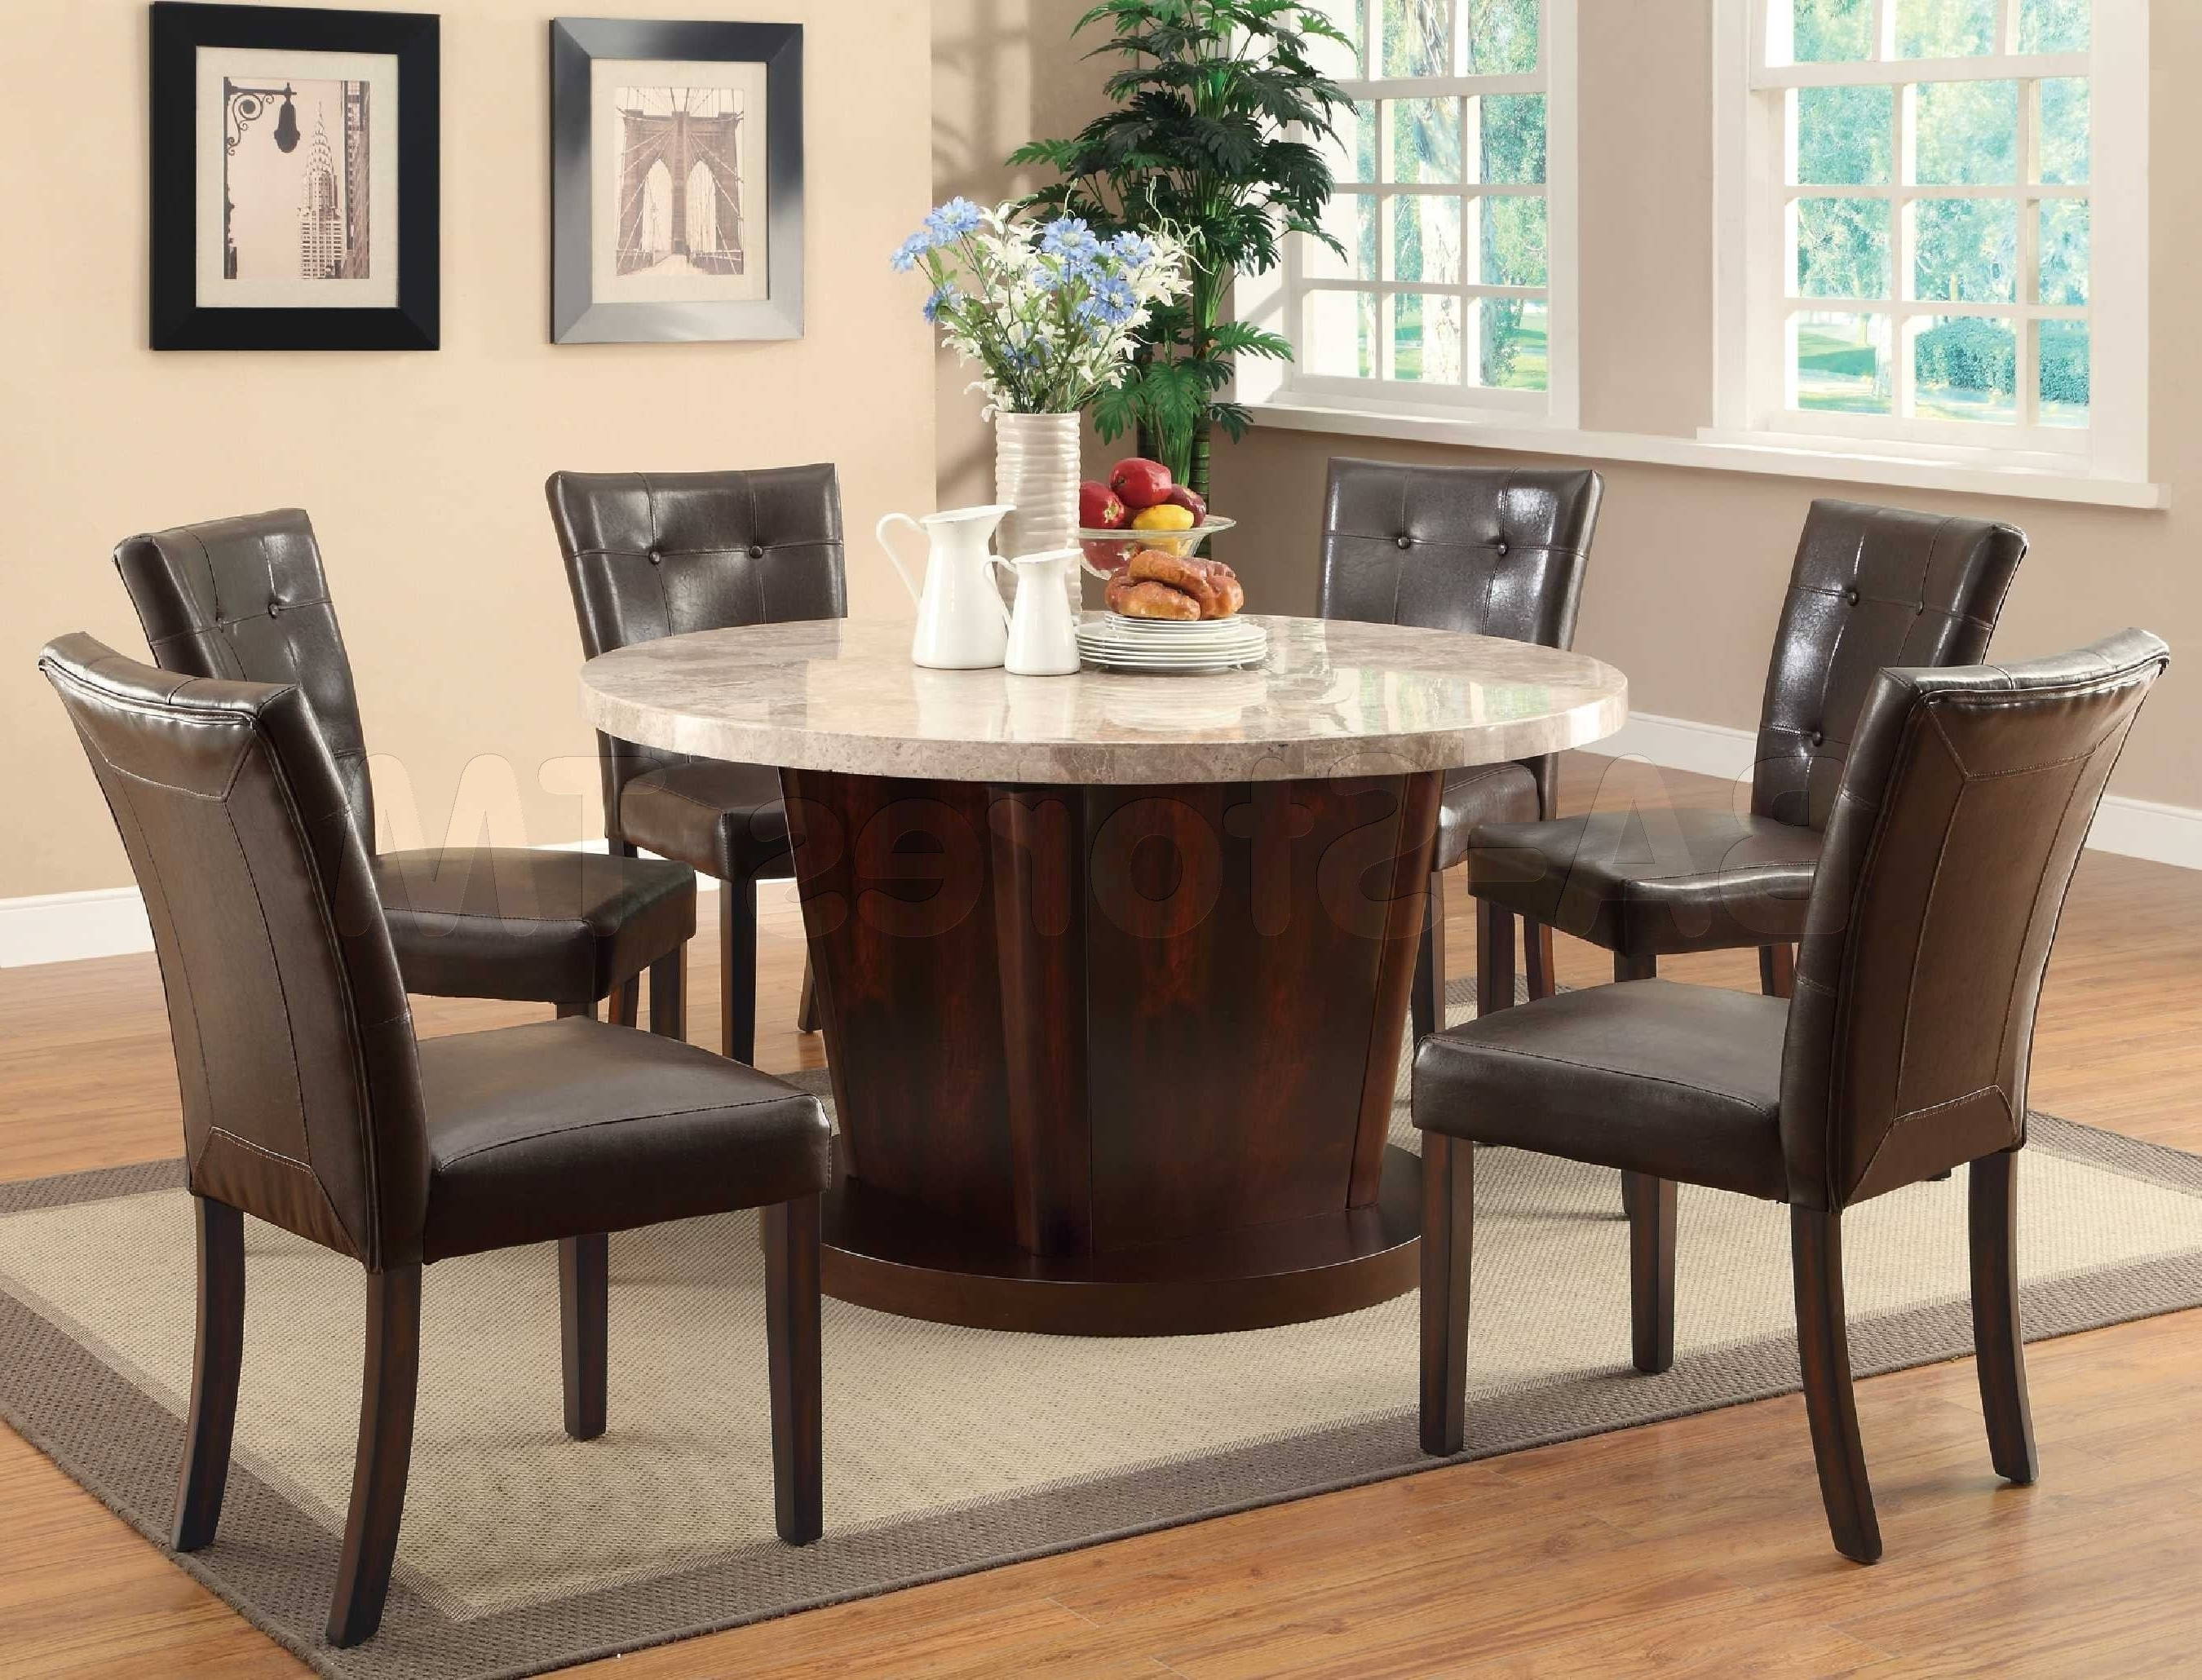 2017 Norwood 9 Piece Rectangular Extension Dining Sets With Uph Side Chairs Regarding Low Cost Dining Room Tables. Dishy Room Tables Cheap Prices Dining (Gallery 21 of 25)